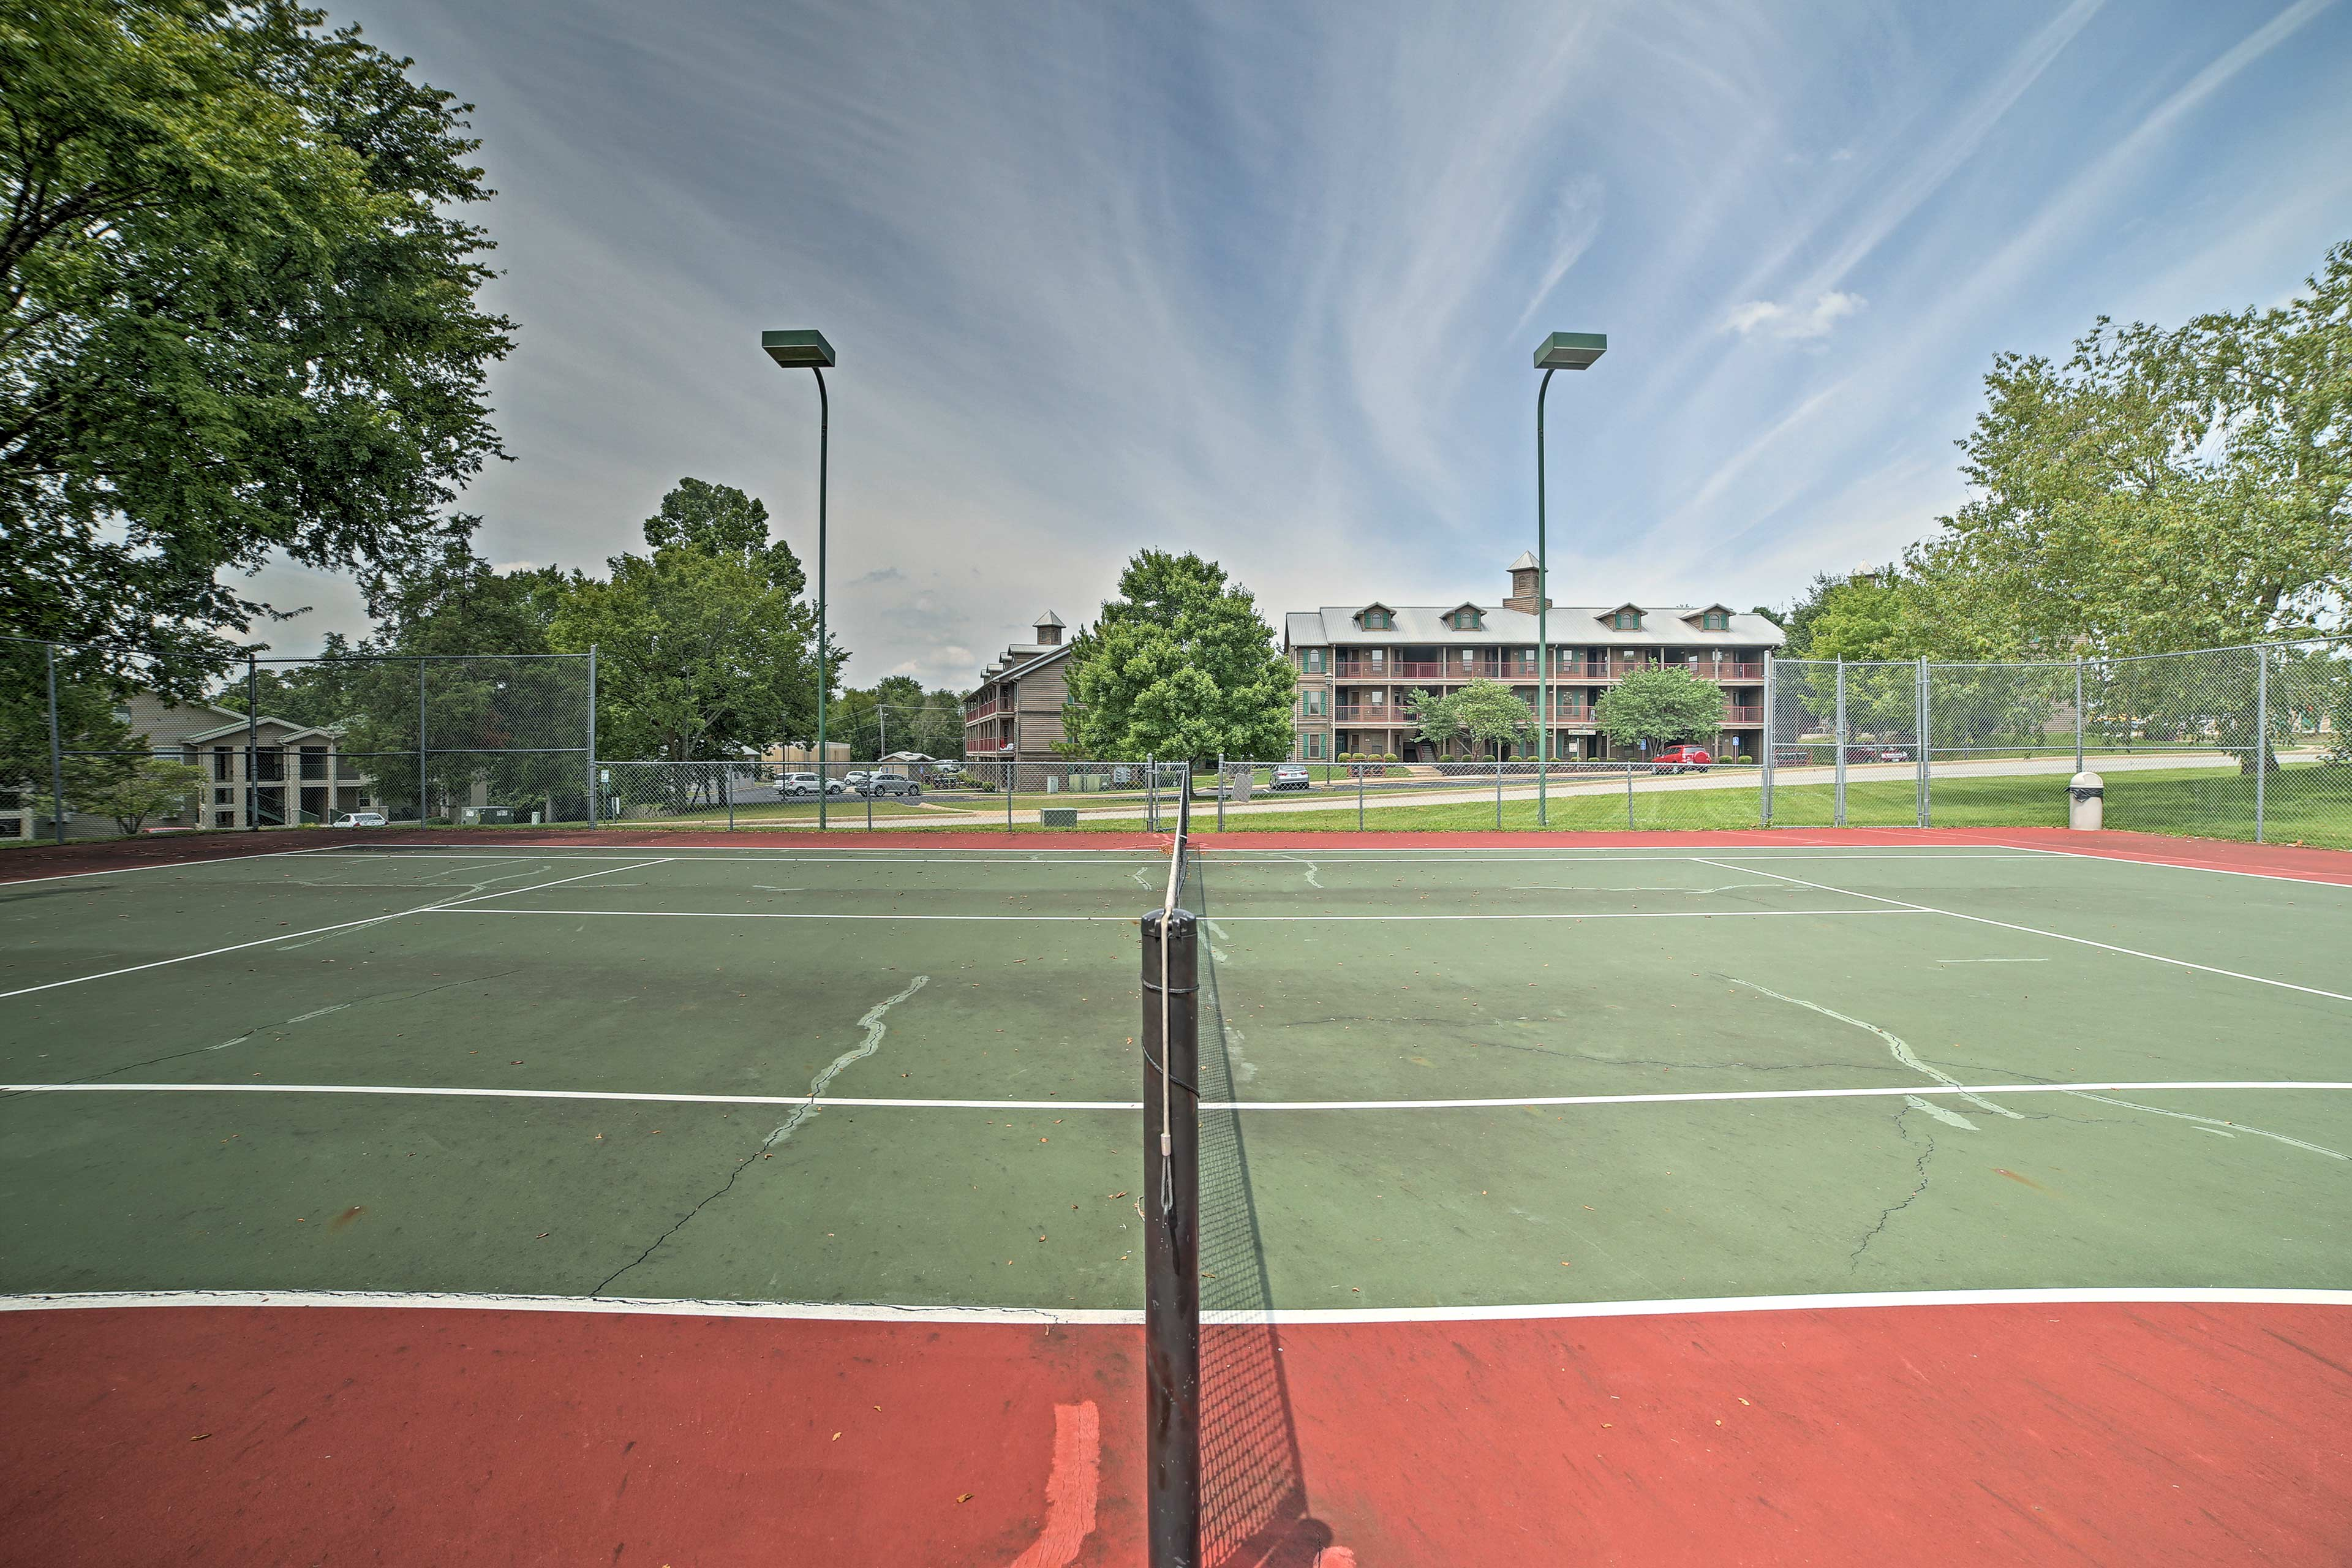 Team up for a doubles match on the tennis courts.